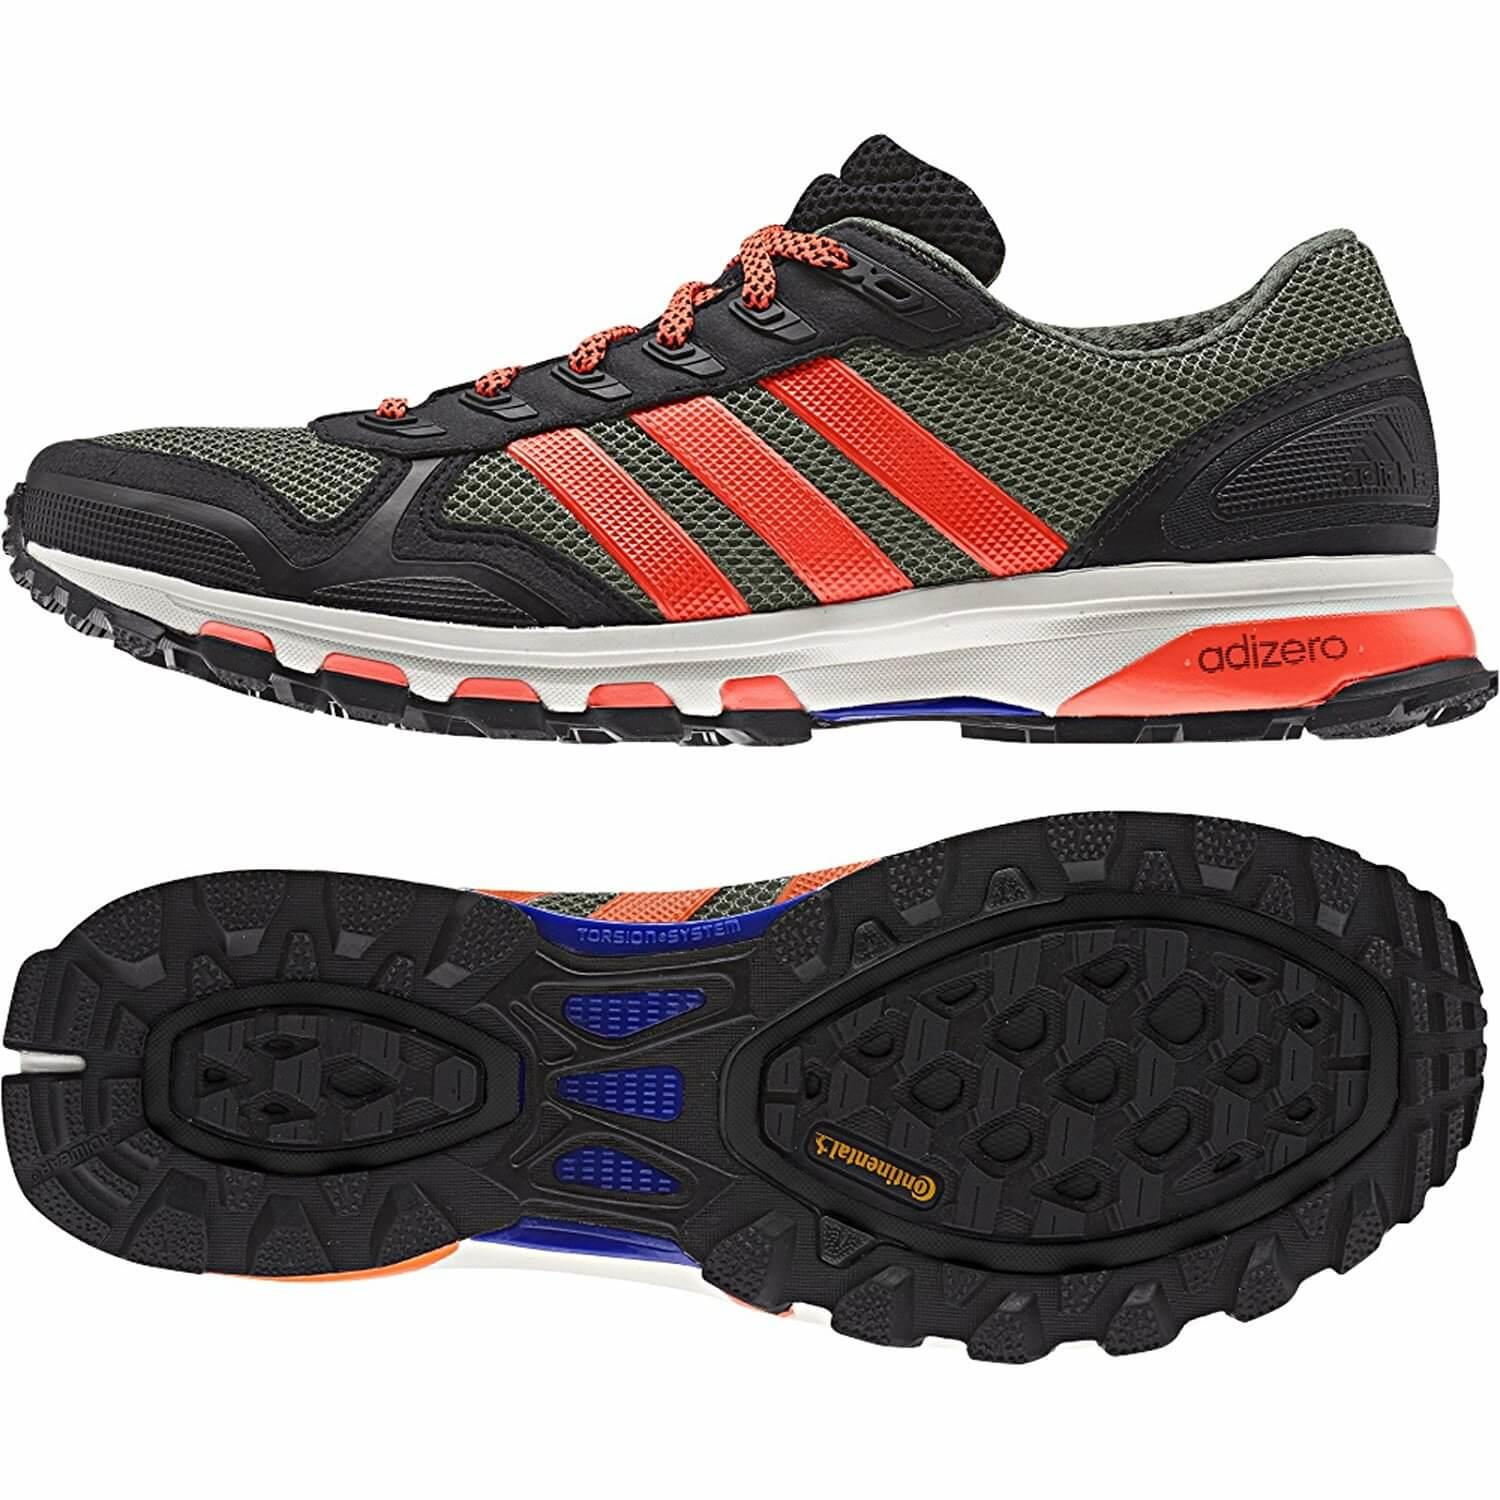 Adidas Adizero XT 5 excellent traction on the trail